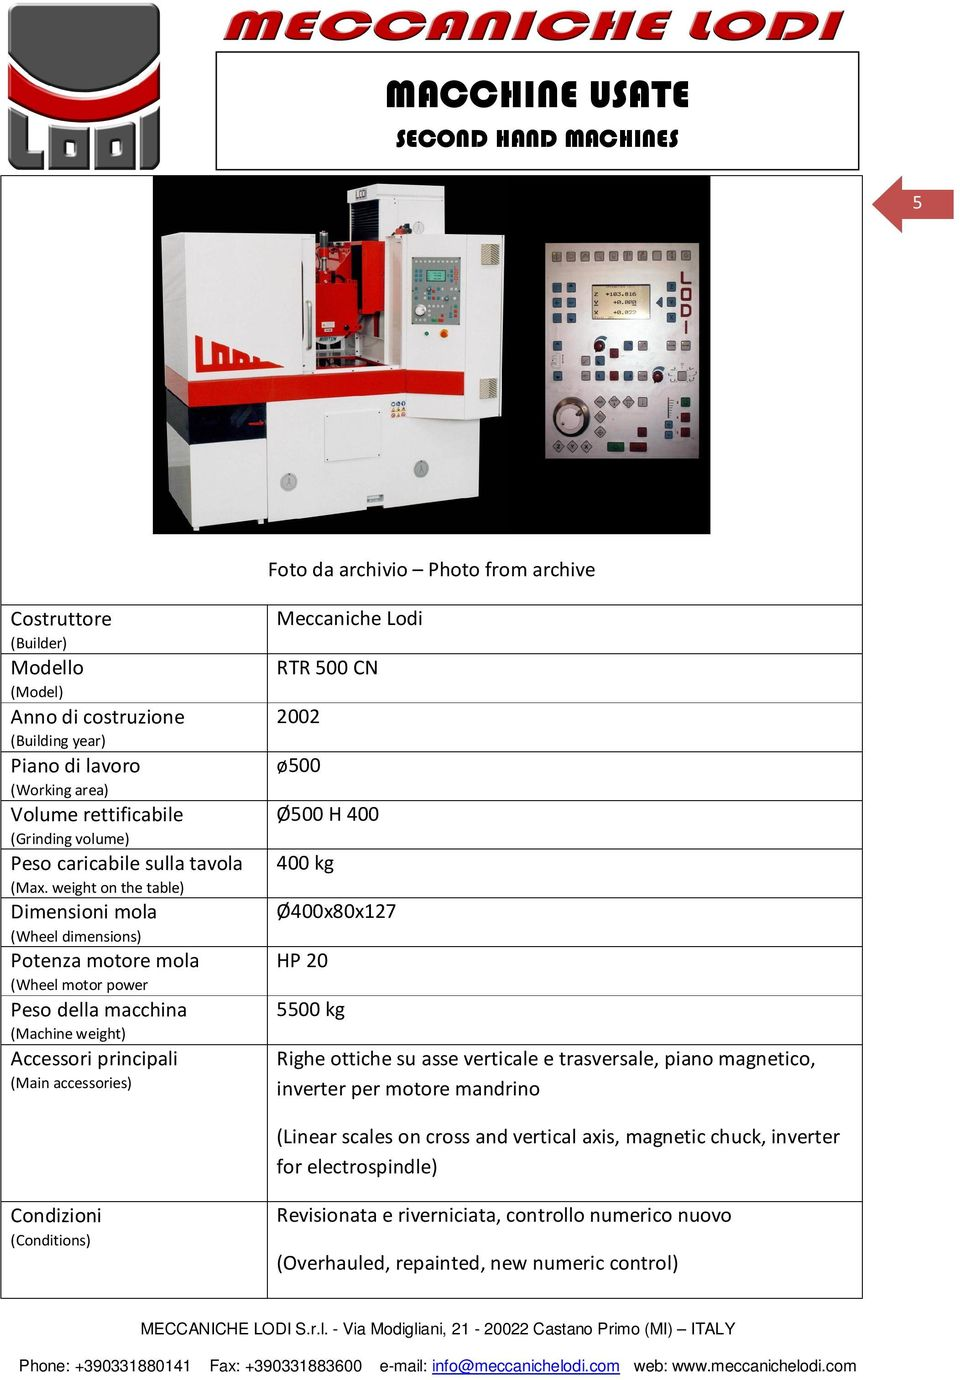 inverter per motore mandrino (Linear scales on cross and vertical axis, magnetic chuck, inverter for